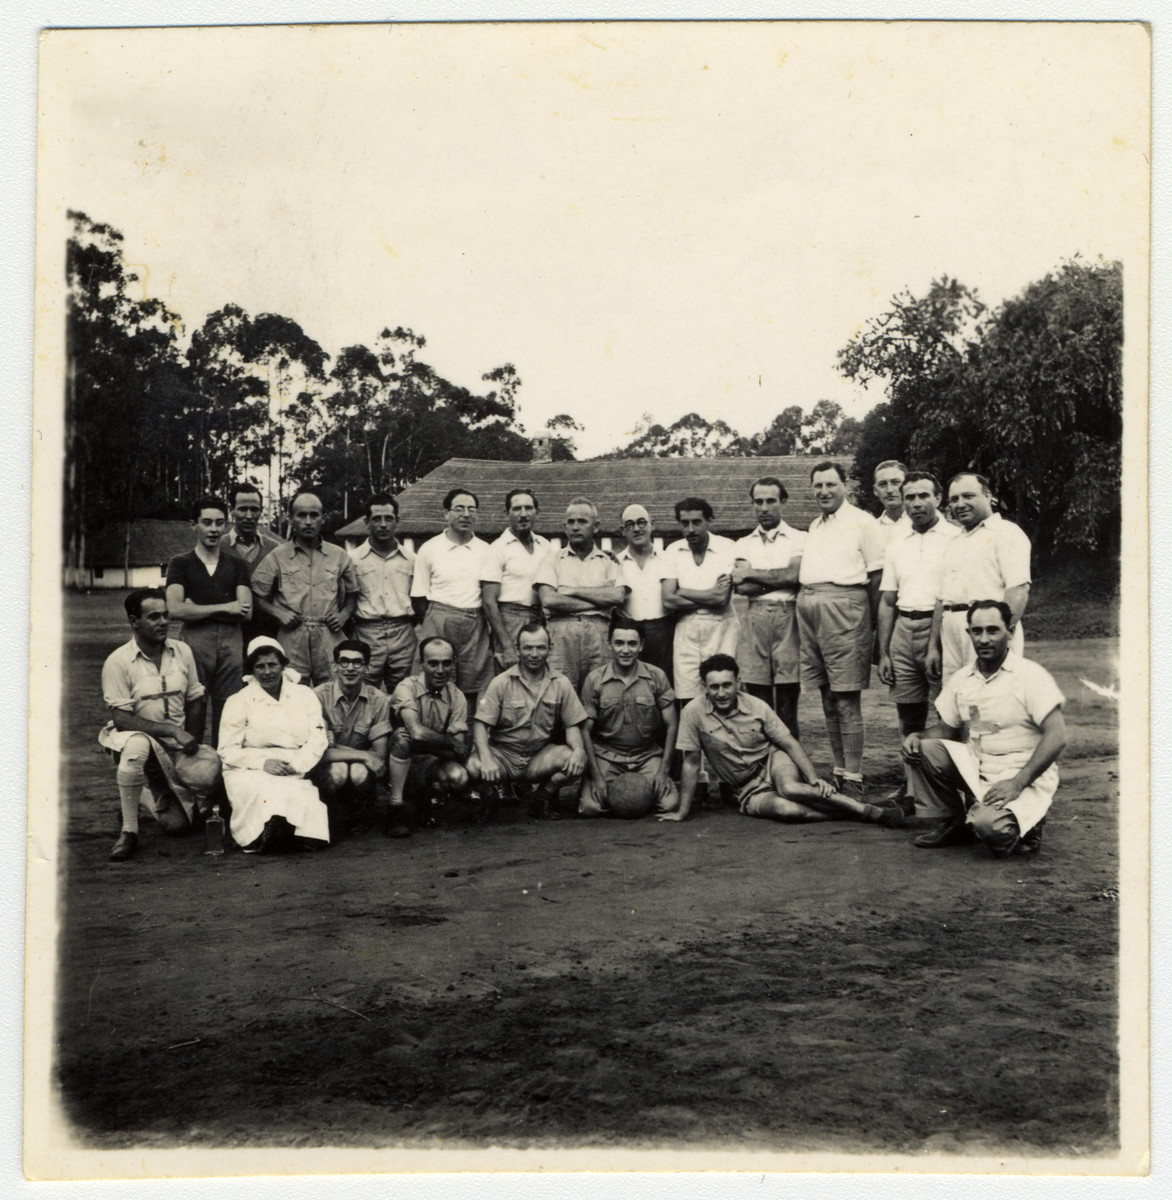 Group portrait of the men's soccer team in an enemy aliens' camp in Nyasaland, Africa.    Among those pictured is Kalman Haber.